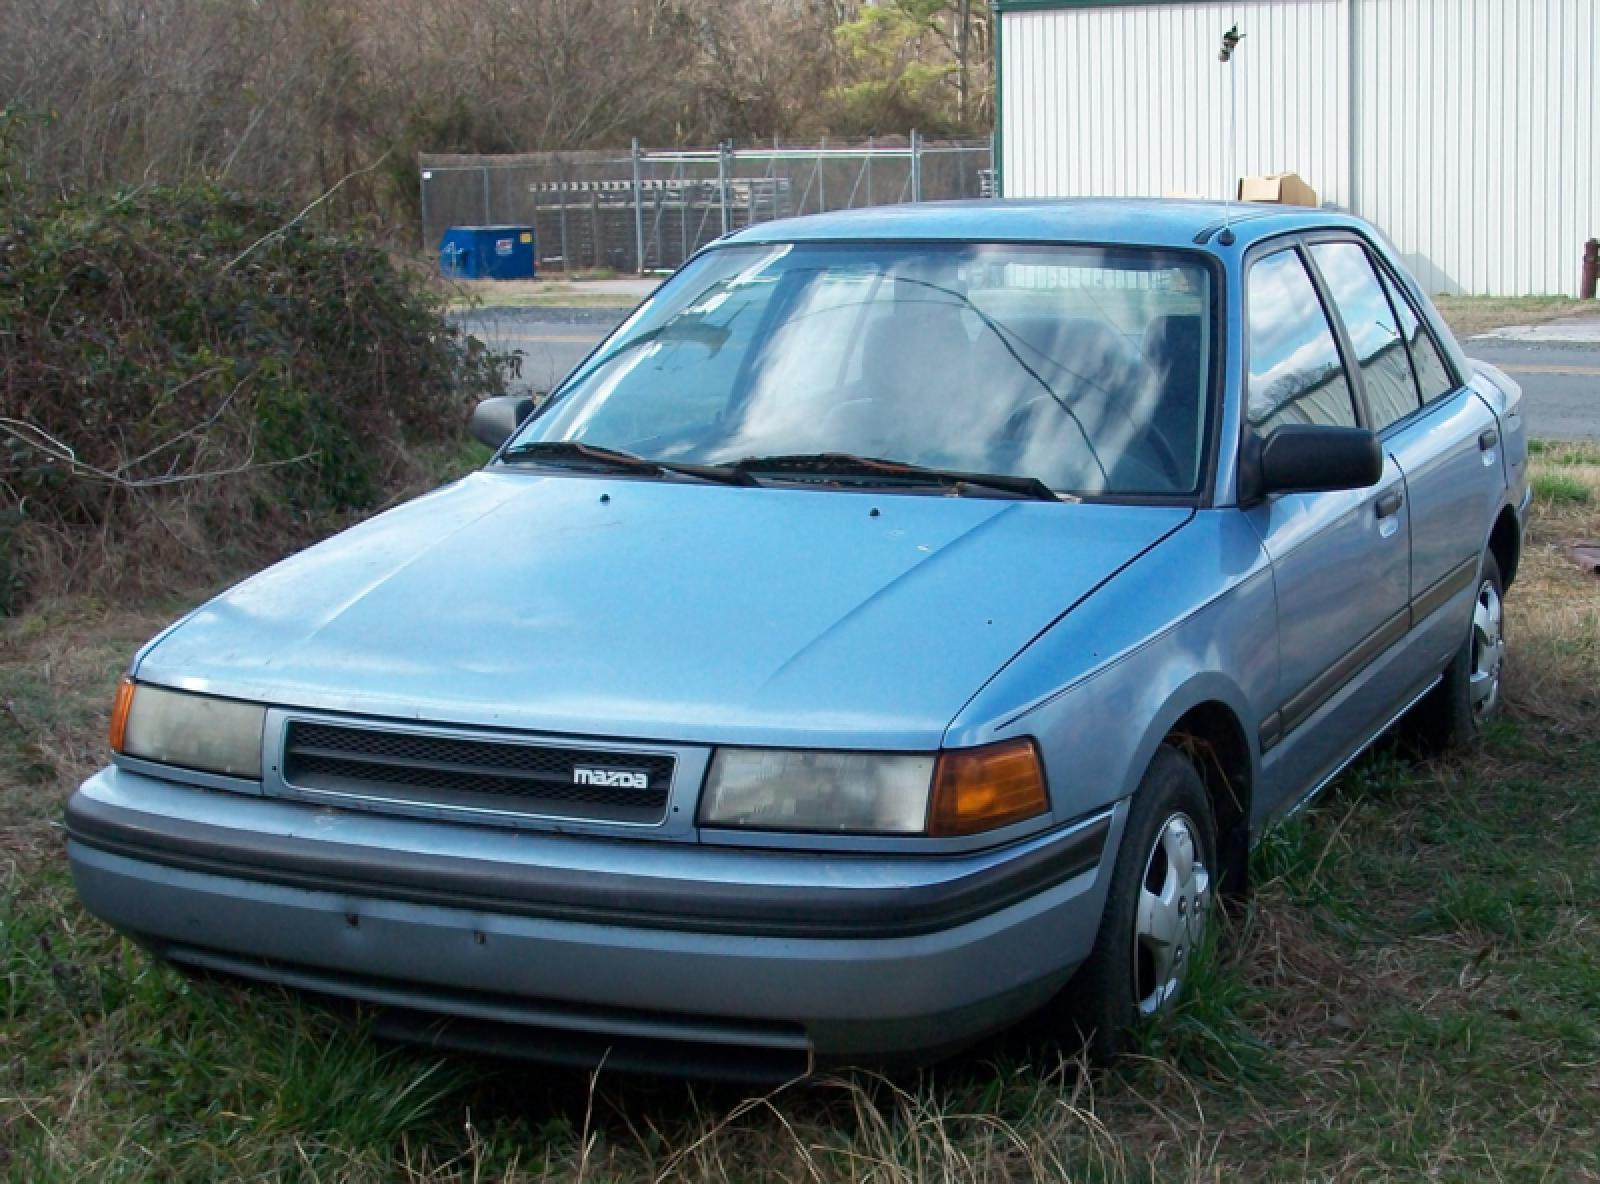 1991 Mazda Protege - Information and photos - ZombieDrive